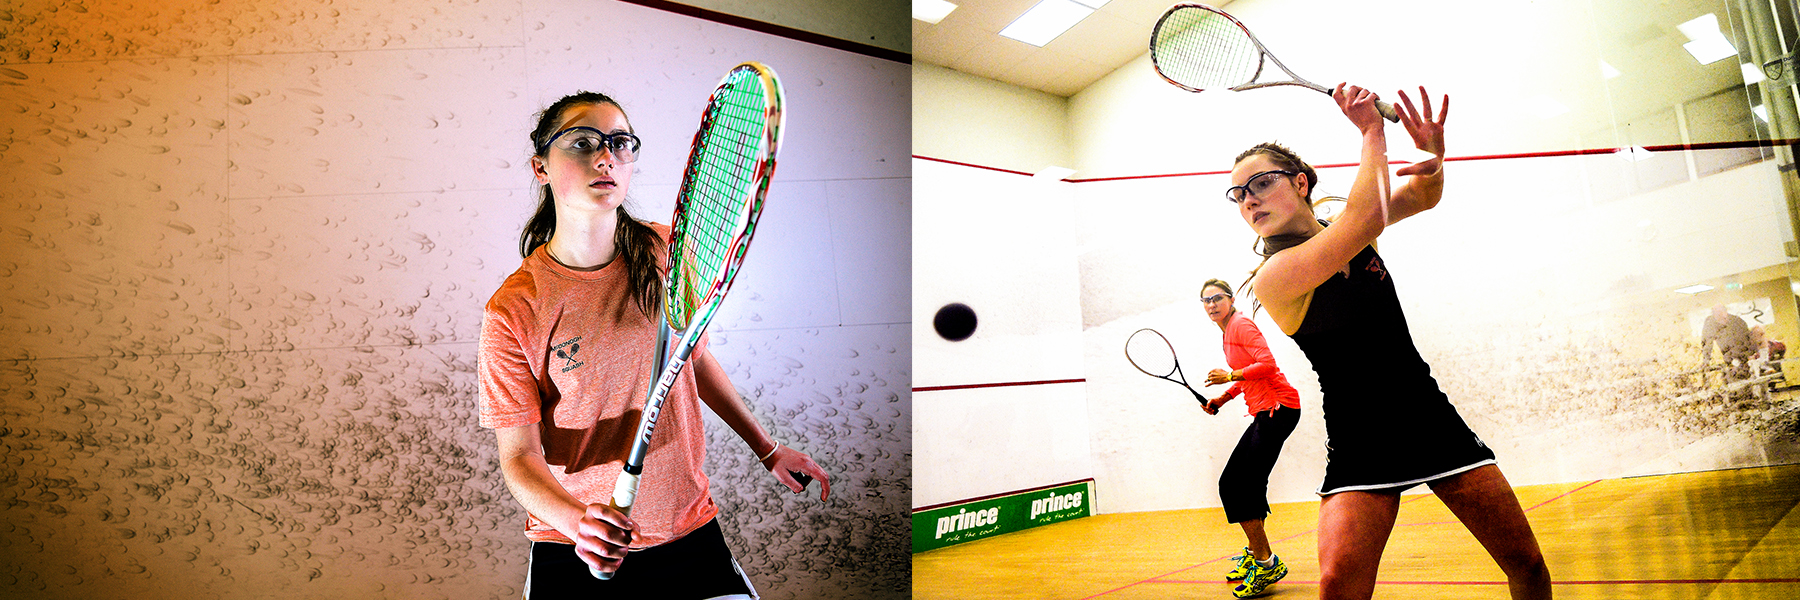 (Left) McDonogh sophomore Eleonore Evans of Ruxton poses at Meadow Mill Athletic Club. Evans recently won the MIAA squash title.  (Right) McDonogh sophomore Eleonore Evans, right of Ruxton plays against her trainer Lissen Tutrone at Meadow Mill Athletic Club. Evans who is currently ranked second in girls under 17 US Squash is training for US Junior Nationals, international play in Europe, World Junior US team and college.